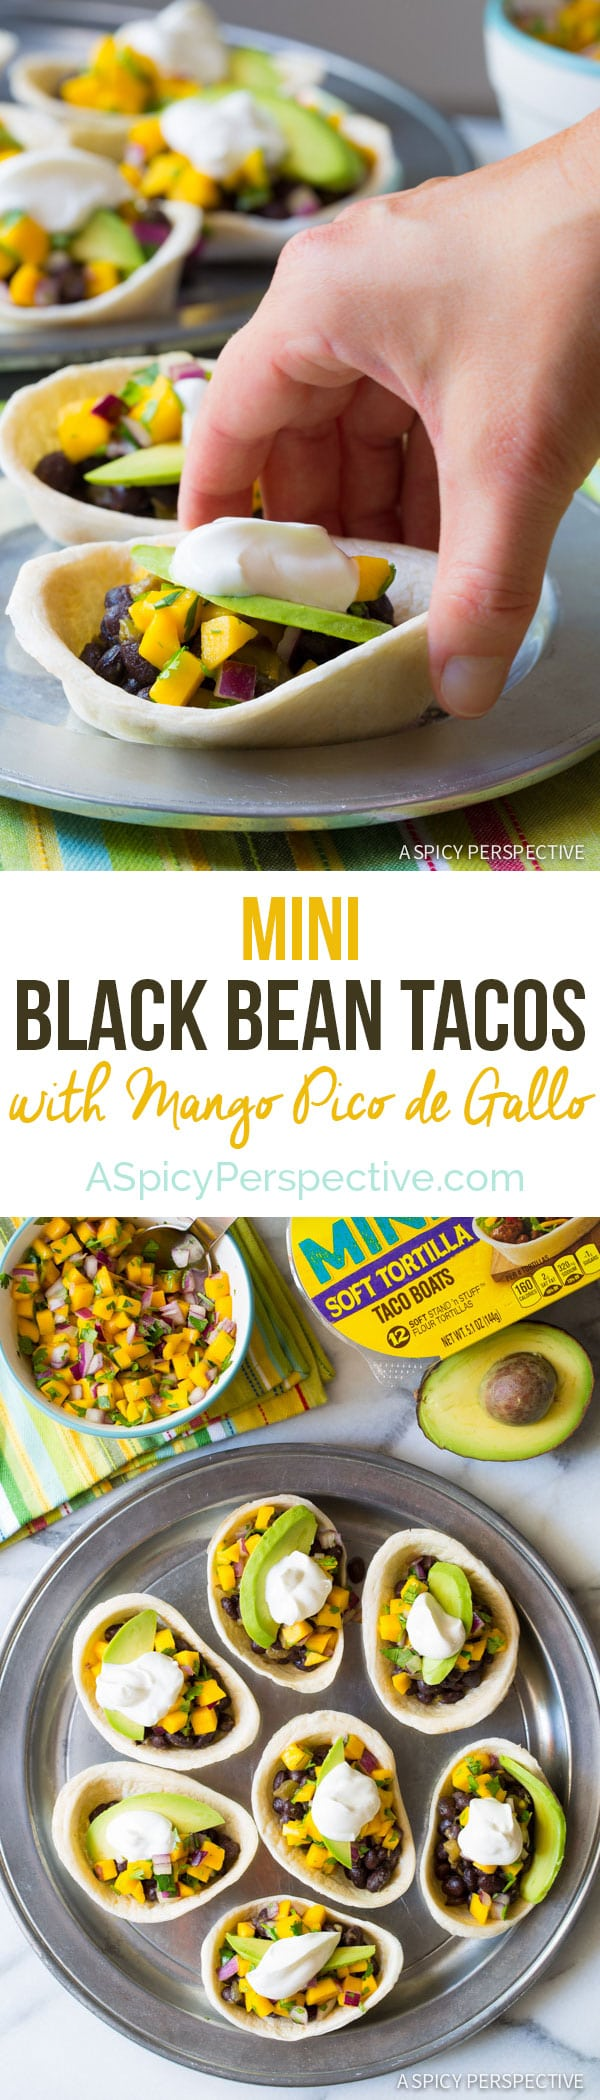 Our new favorite go-to meal - Mini Black Bean Tacos with Mango Pico de Gallo on ASpicyPerspective.com #mexican #vegetarian